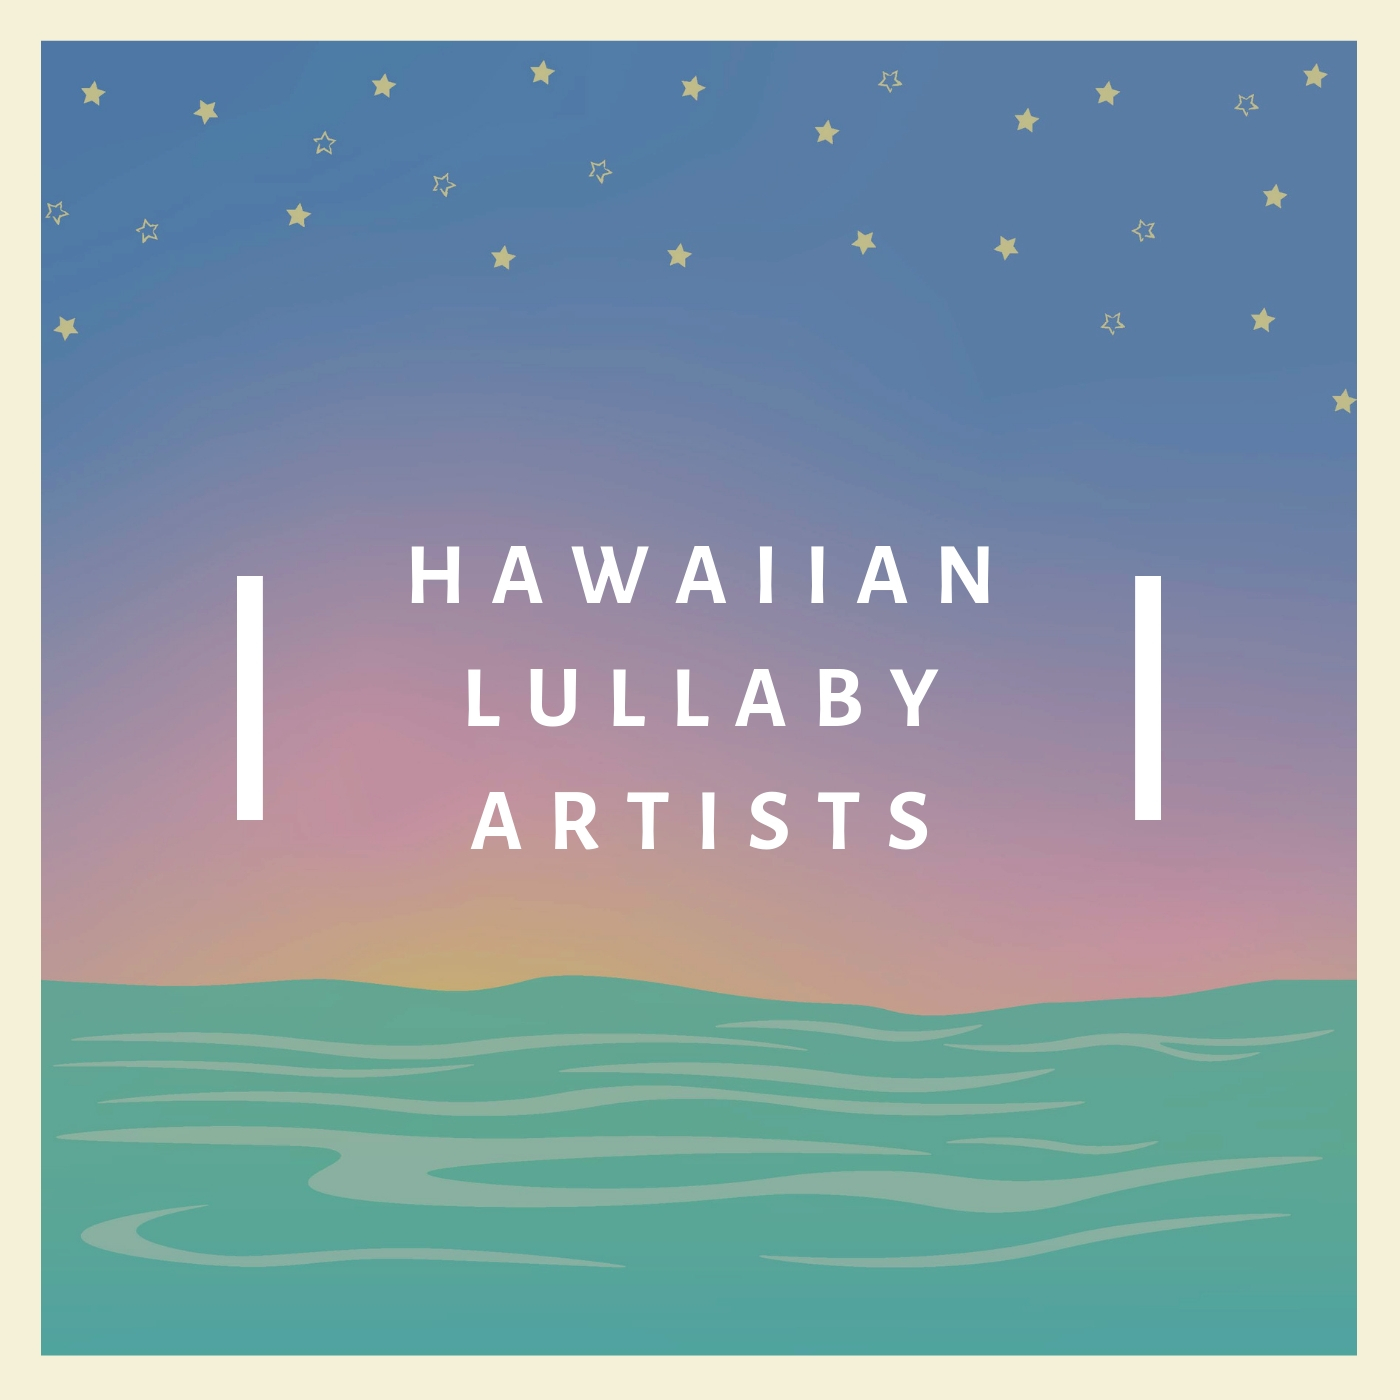 Hawaiian Lullaby Artists.jpg